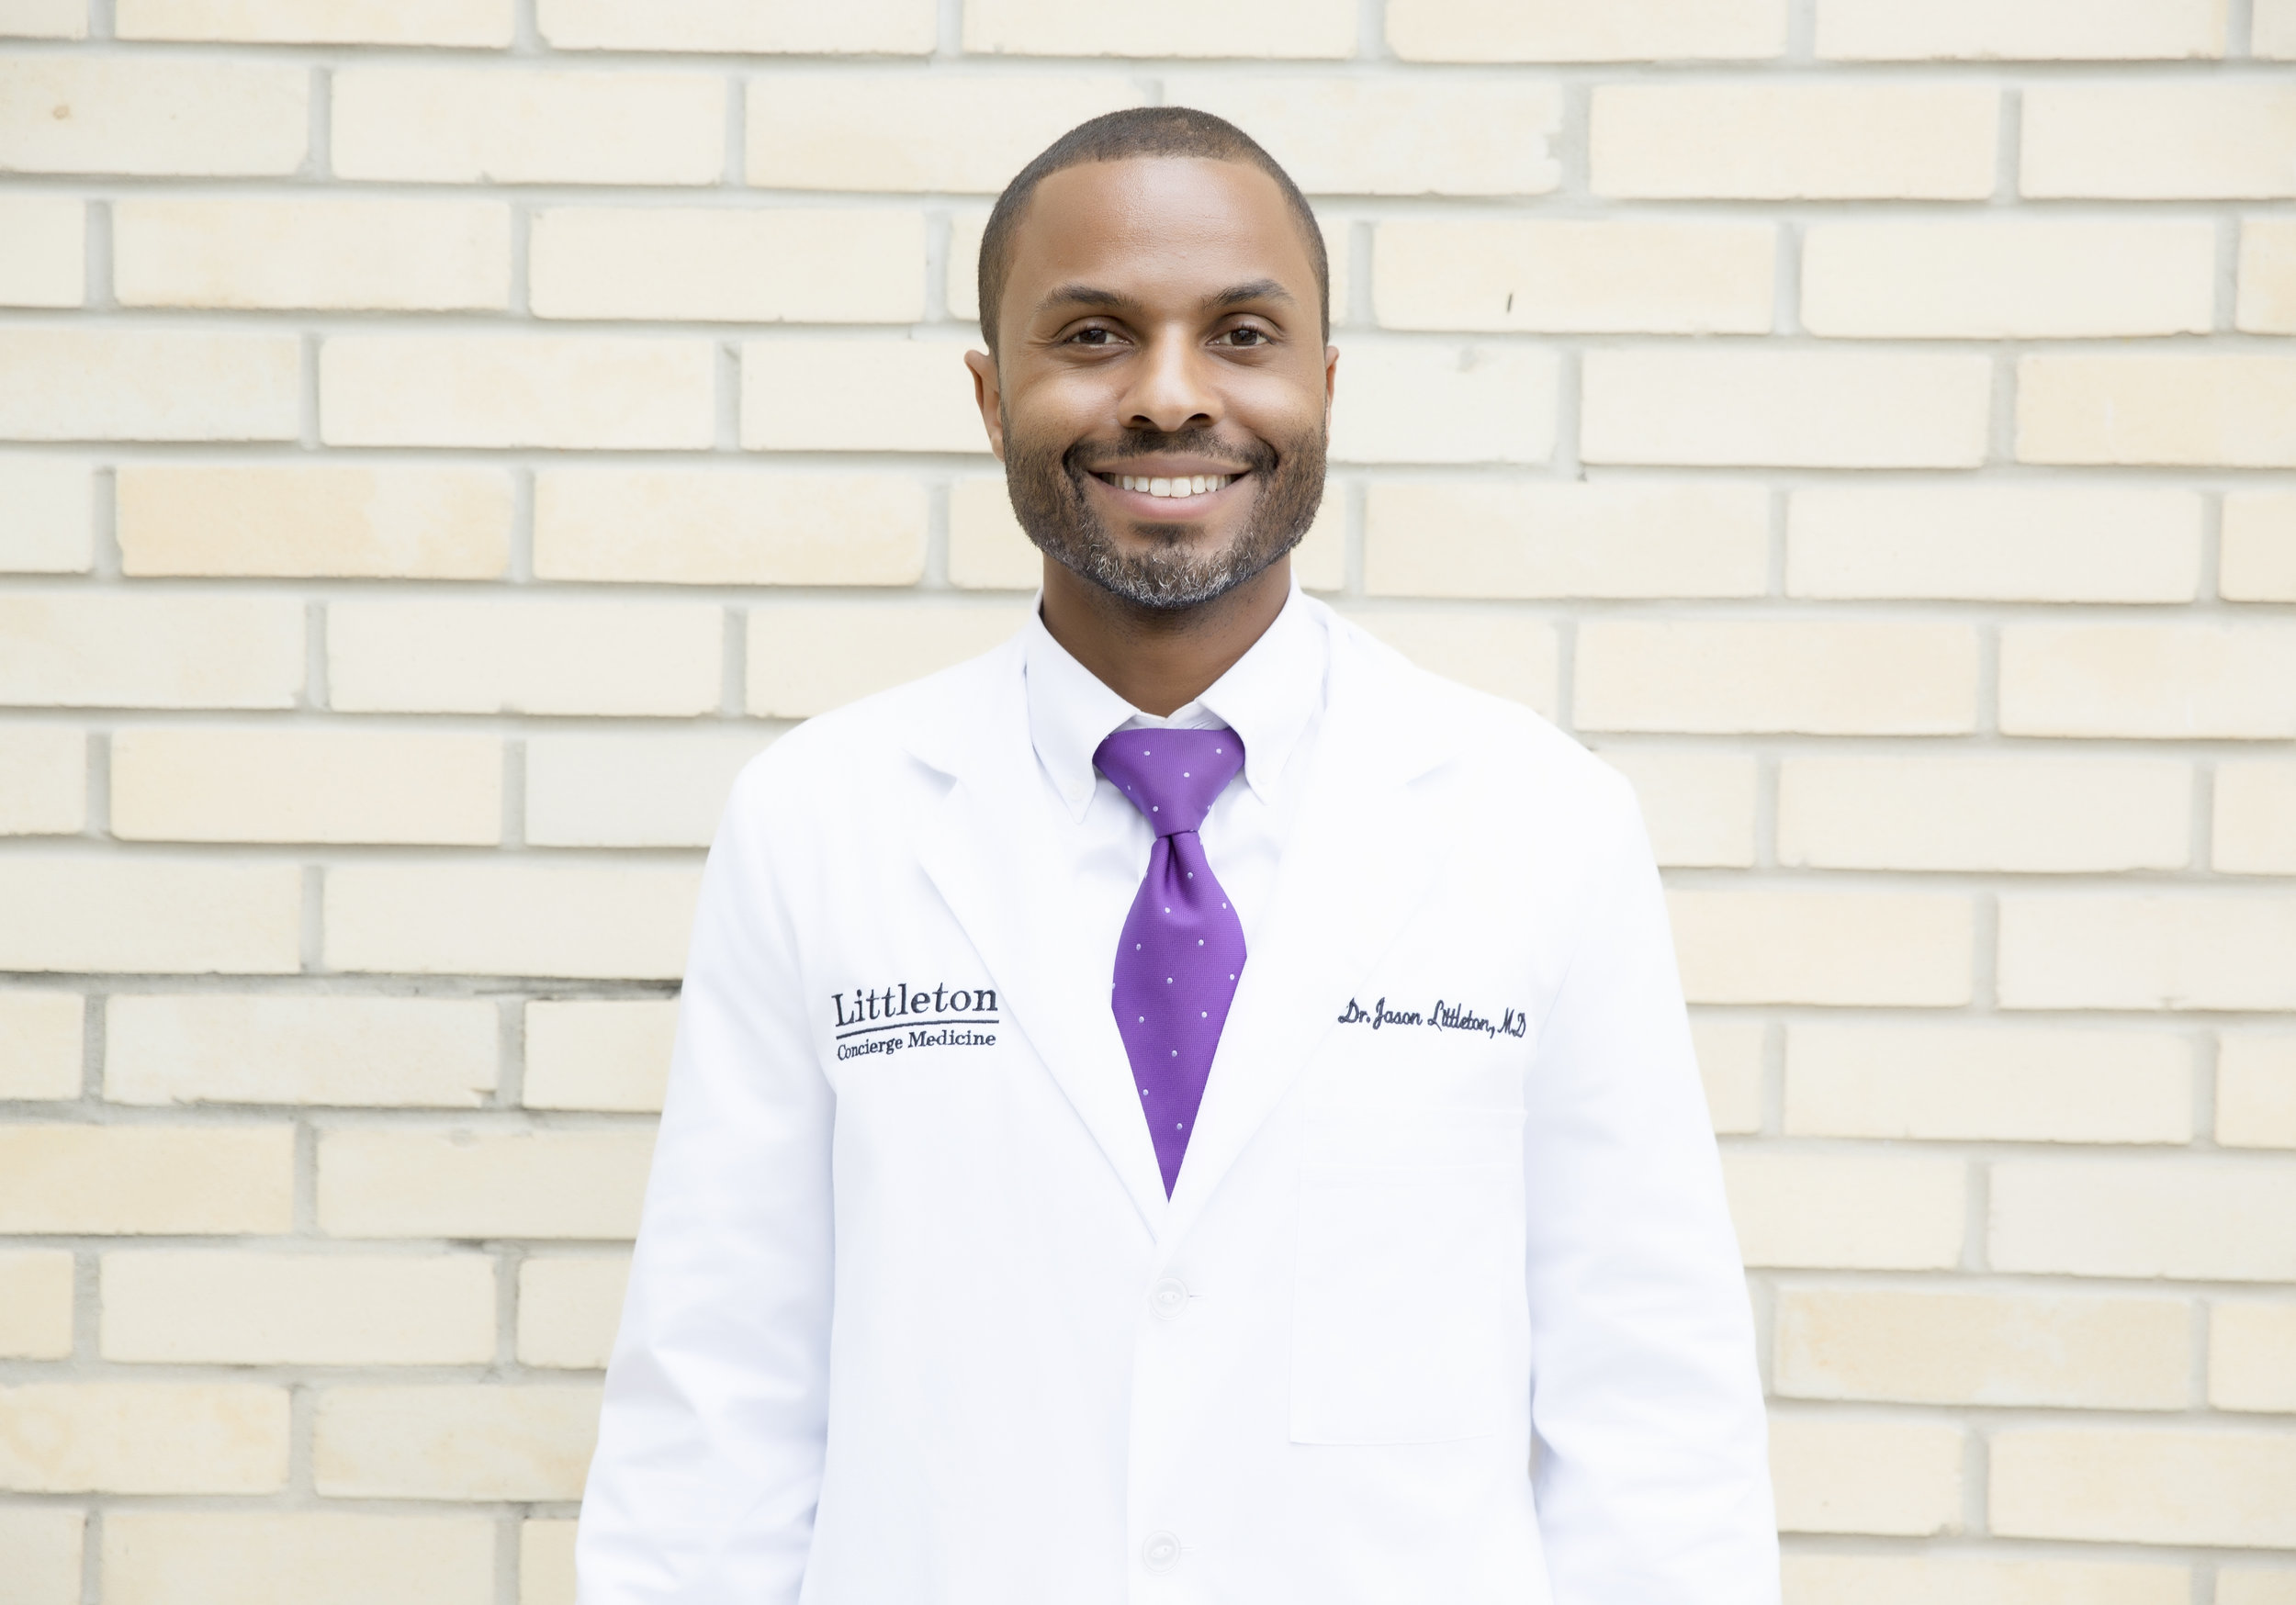 Dr. Jason Littleton - Dept. Chair of Family Medicine, Board Certified Family Physician, Author, Speaker, Media Personality, Health Coach, CEO. Dr. Littleton earned his MD from Michigan State University College of Human Medicine and a BS in Biology from the University of Michigan. MORE